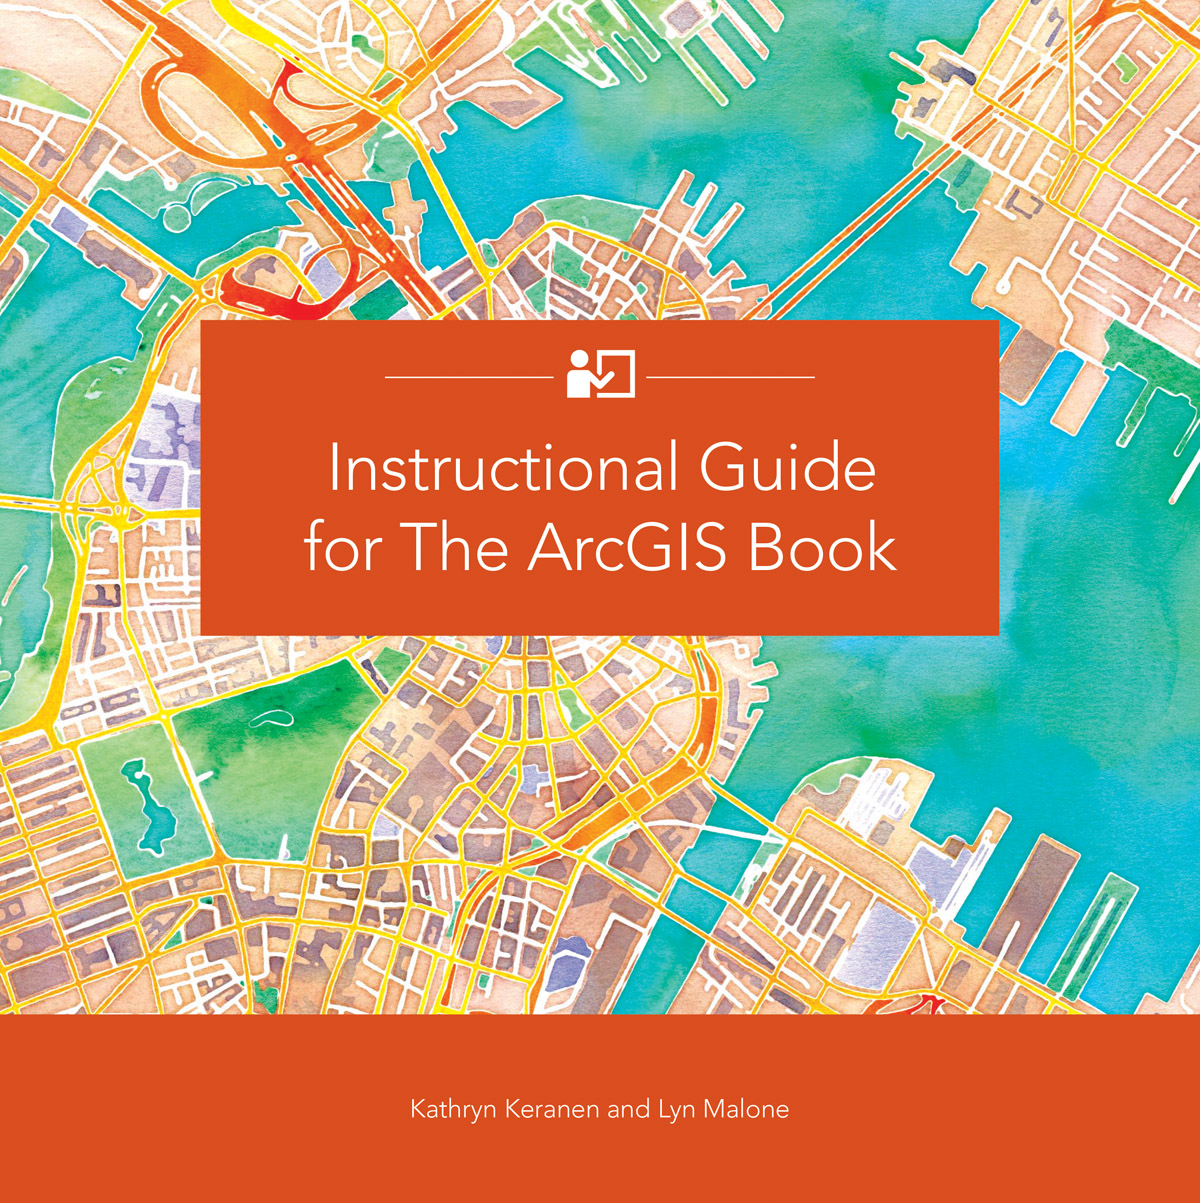 Instructional Guide to the ArcGIS Book emphasizes learning by doing, makes learning fun.